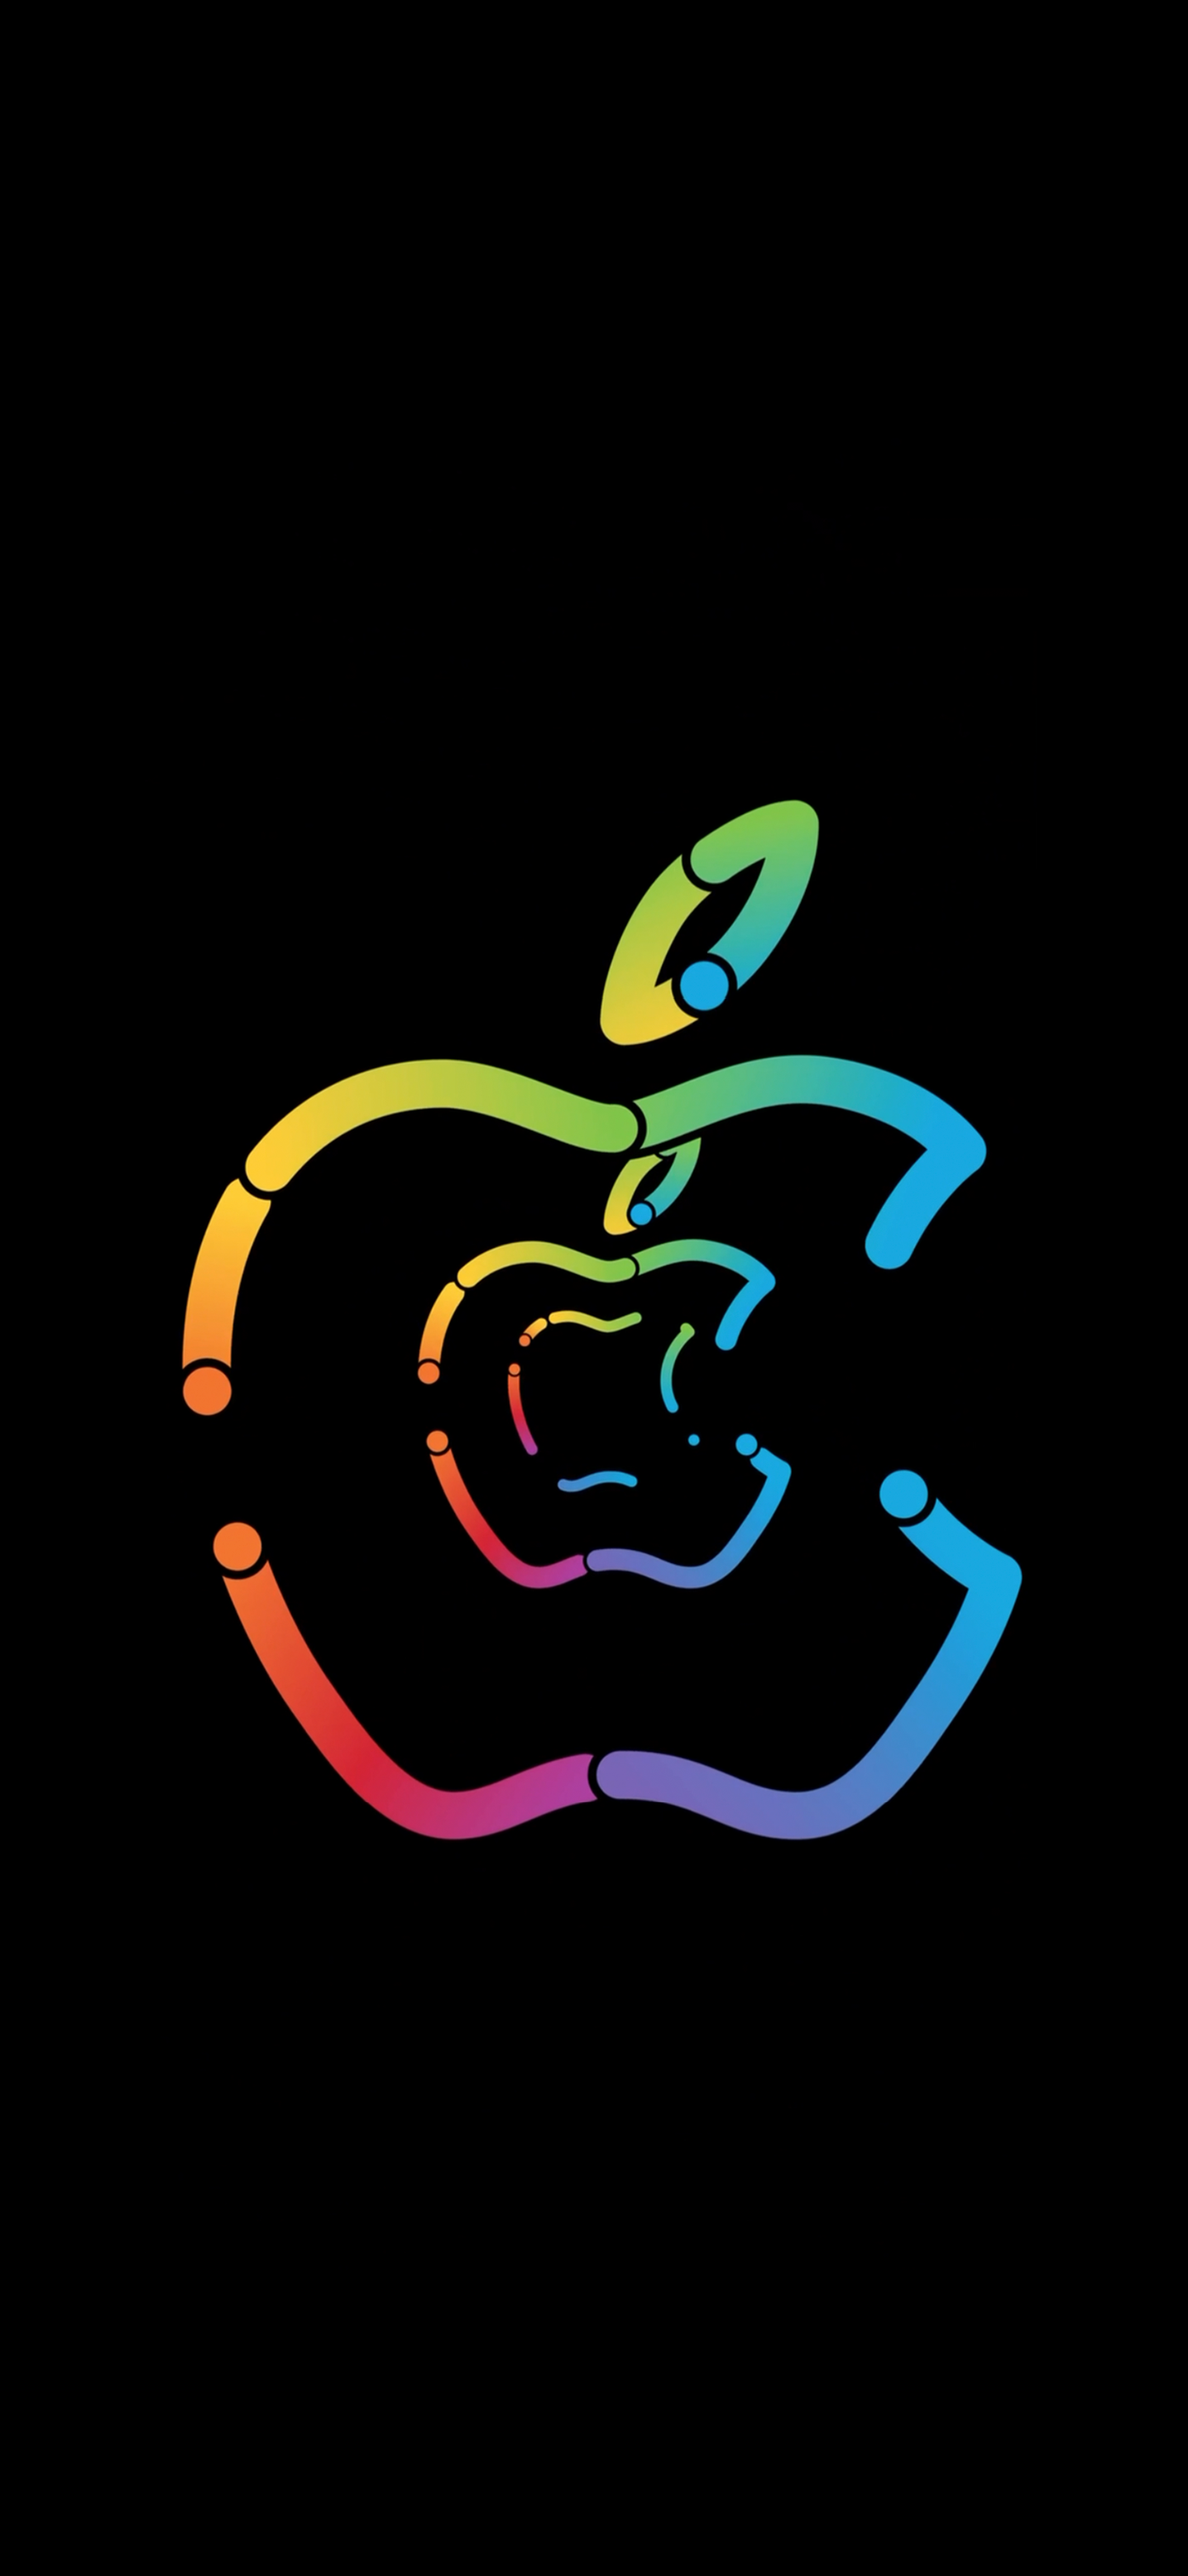 Apple Logo Live Wallpaper Iphone 11 2945630 Hd Wallpaper Backgrounds Download